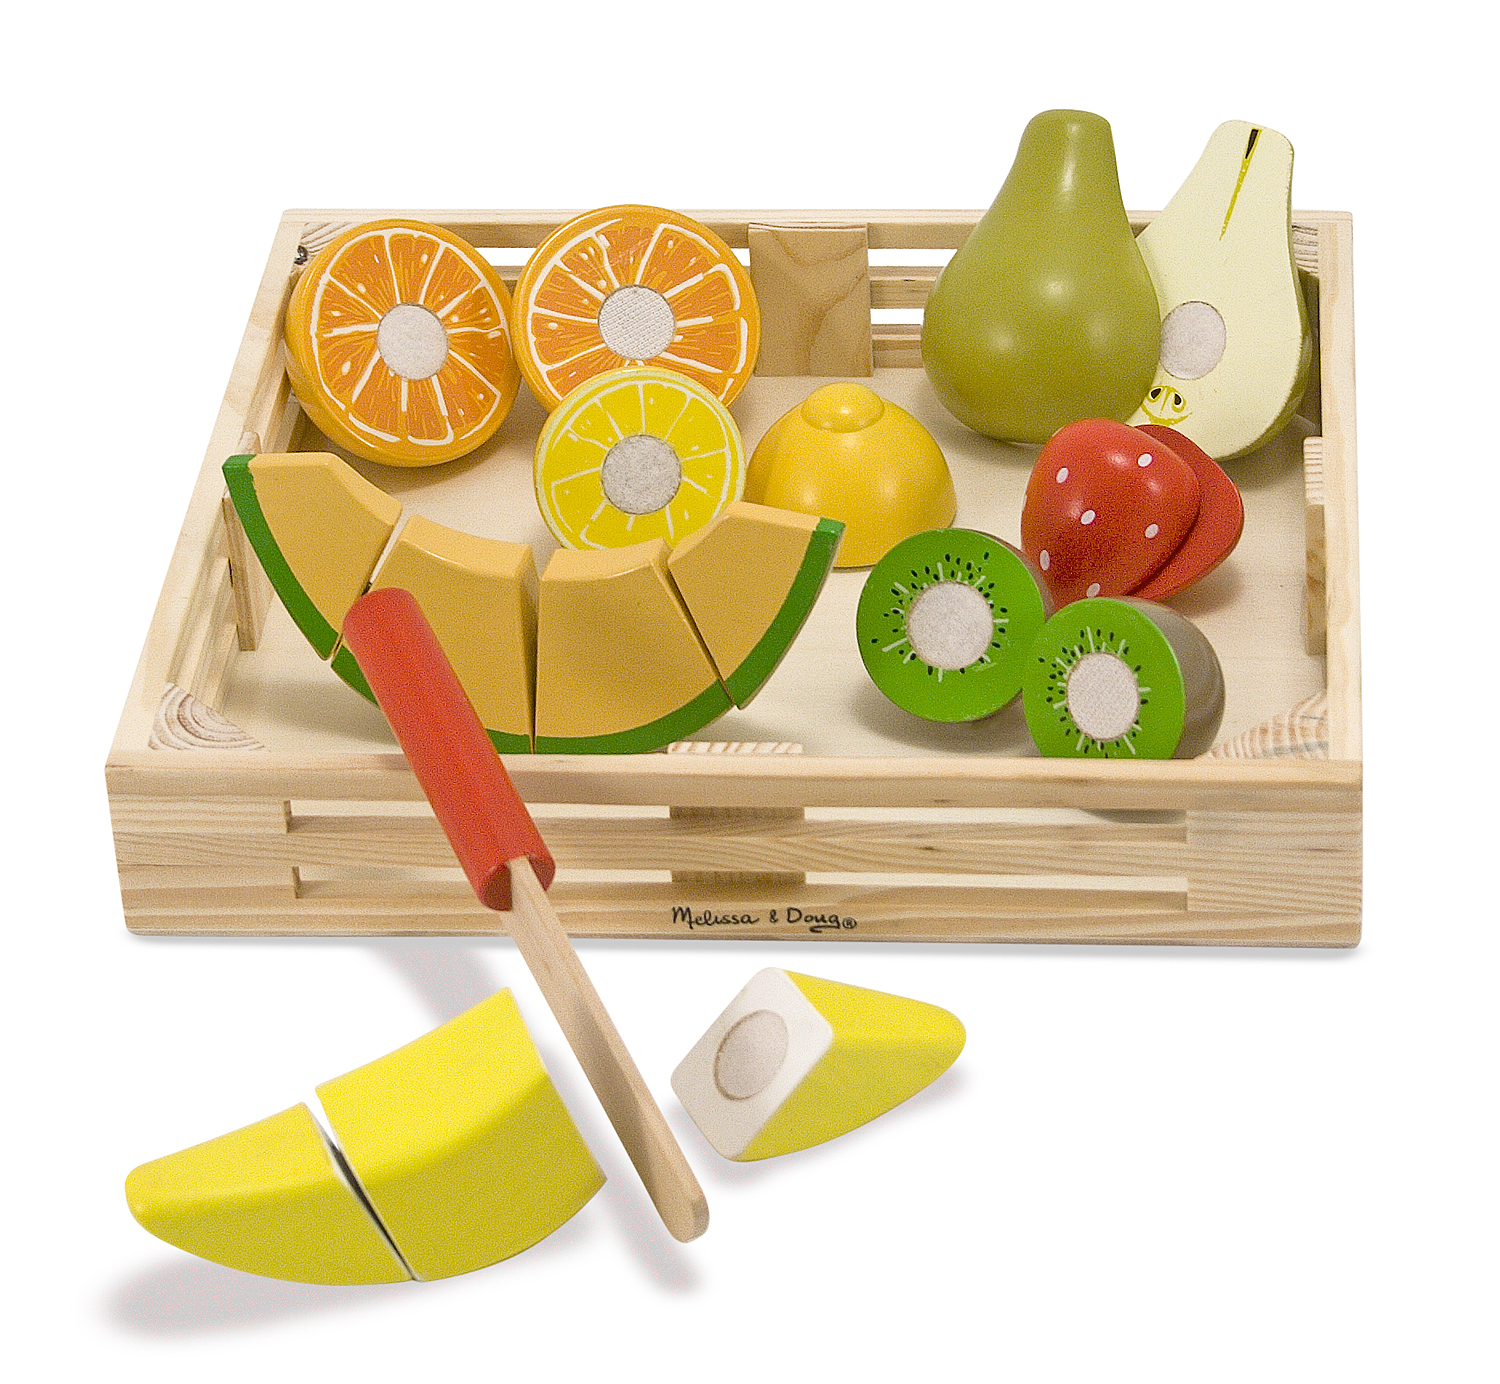 Decor Artificial Lemon Orange Decoration Lifelike Toy Kitchen Club Slices 6 pcs Home Décor